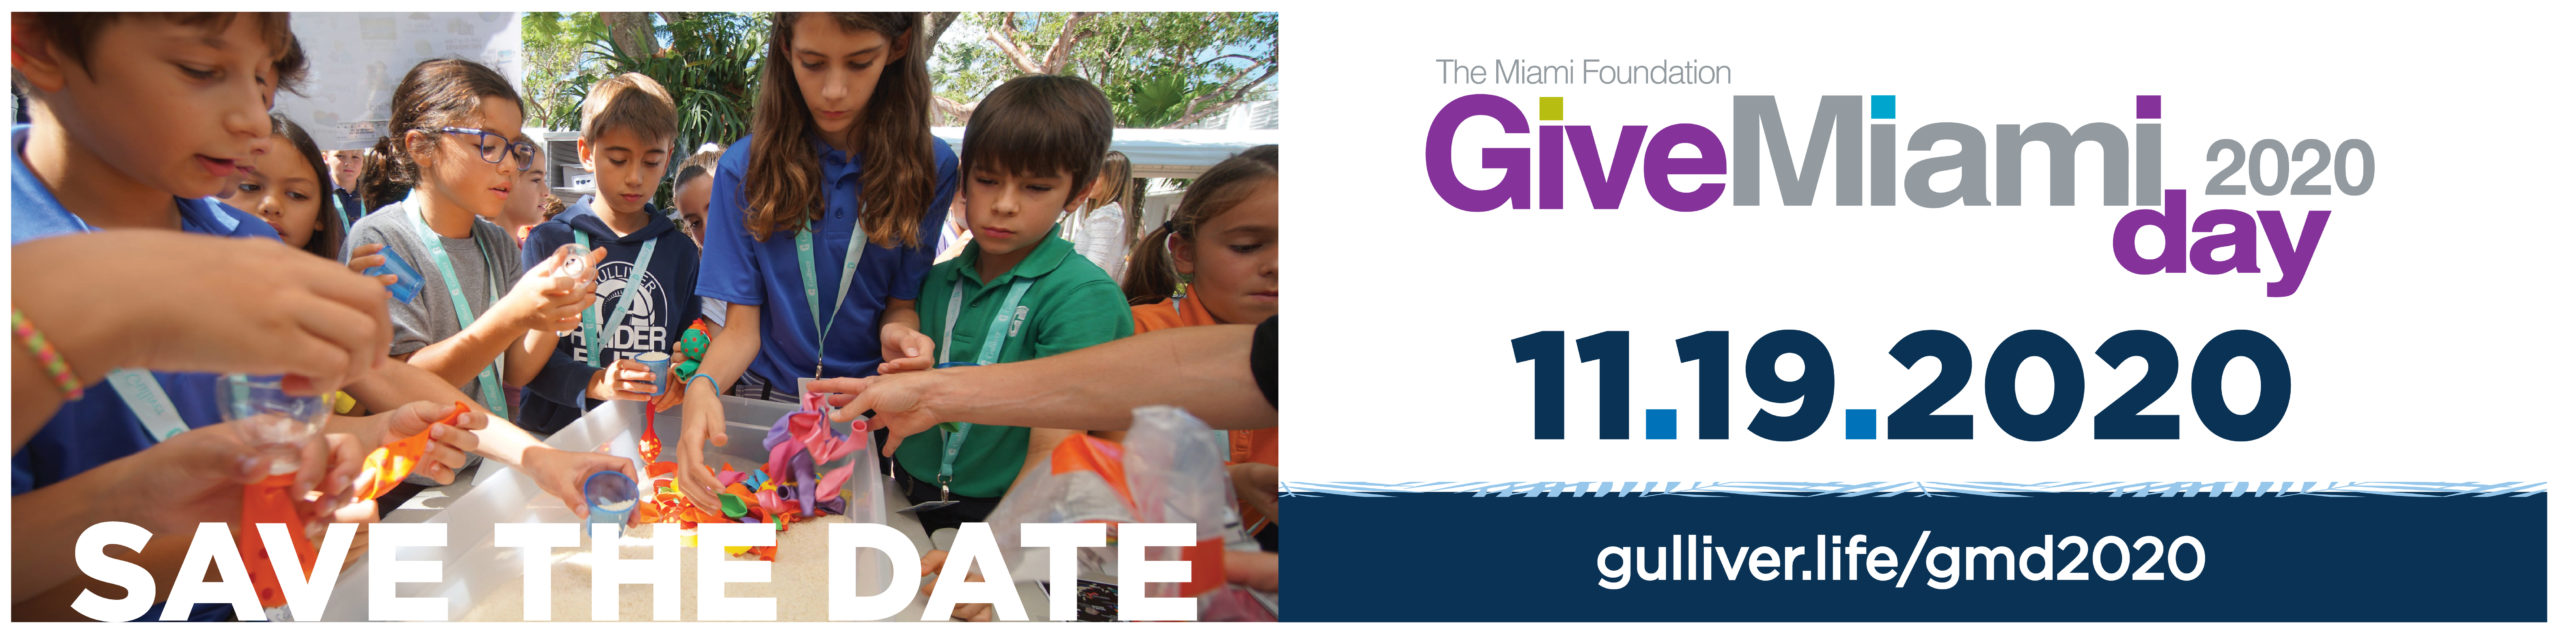 Save the Date Give Miami Day